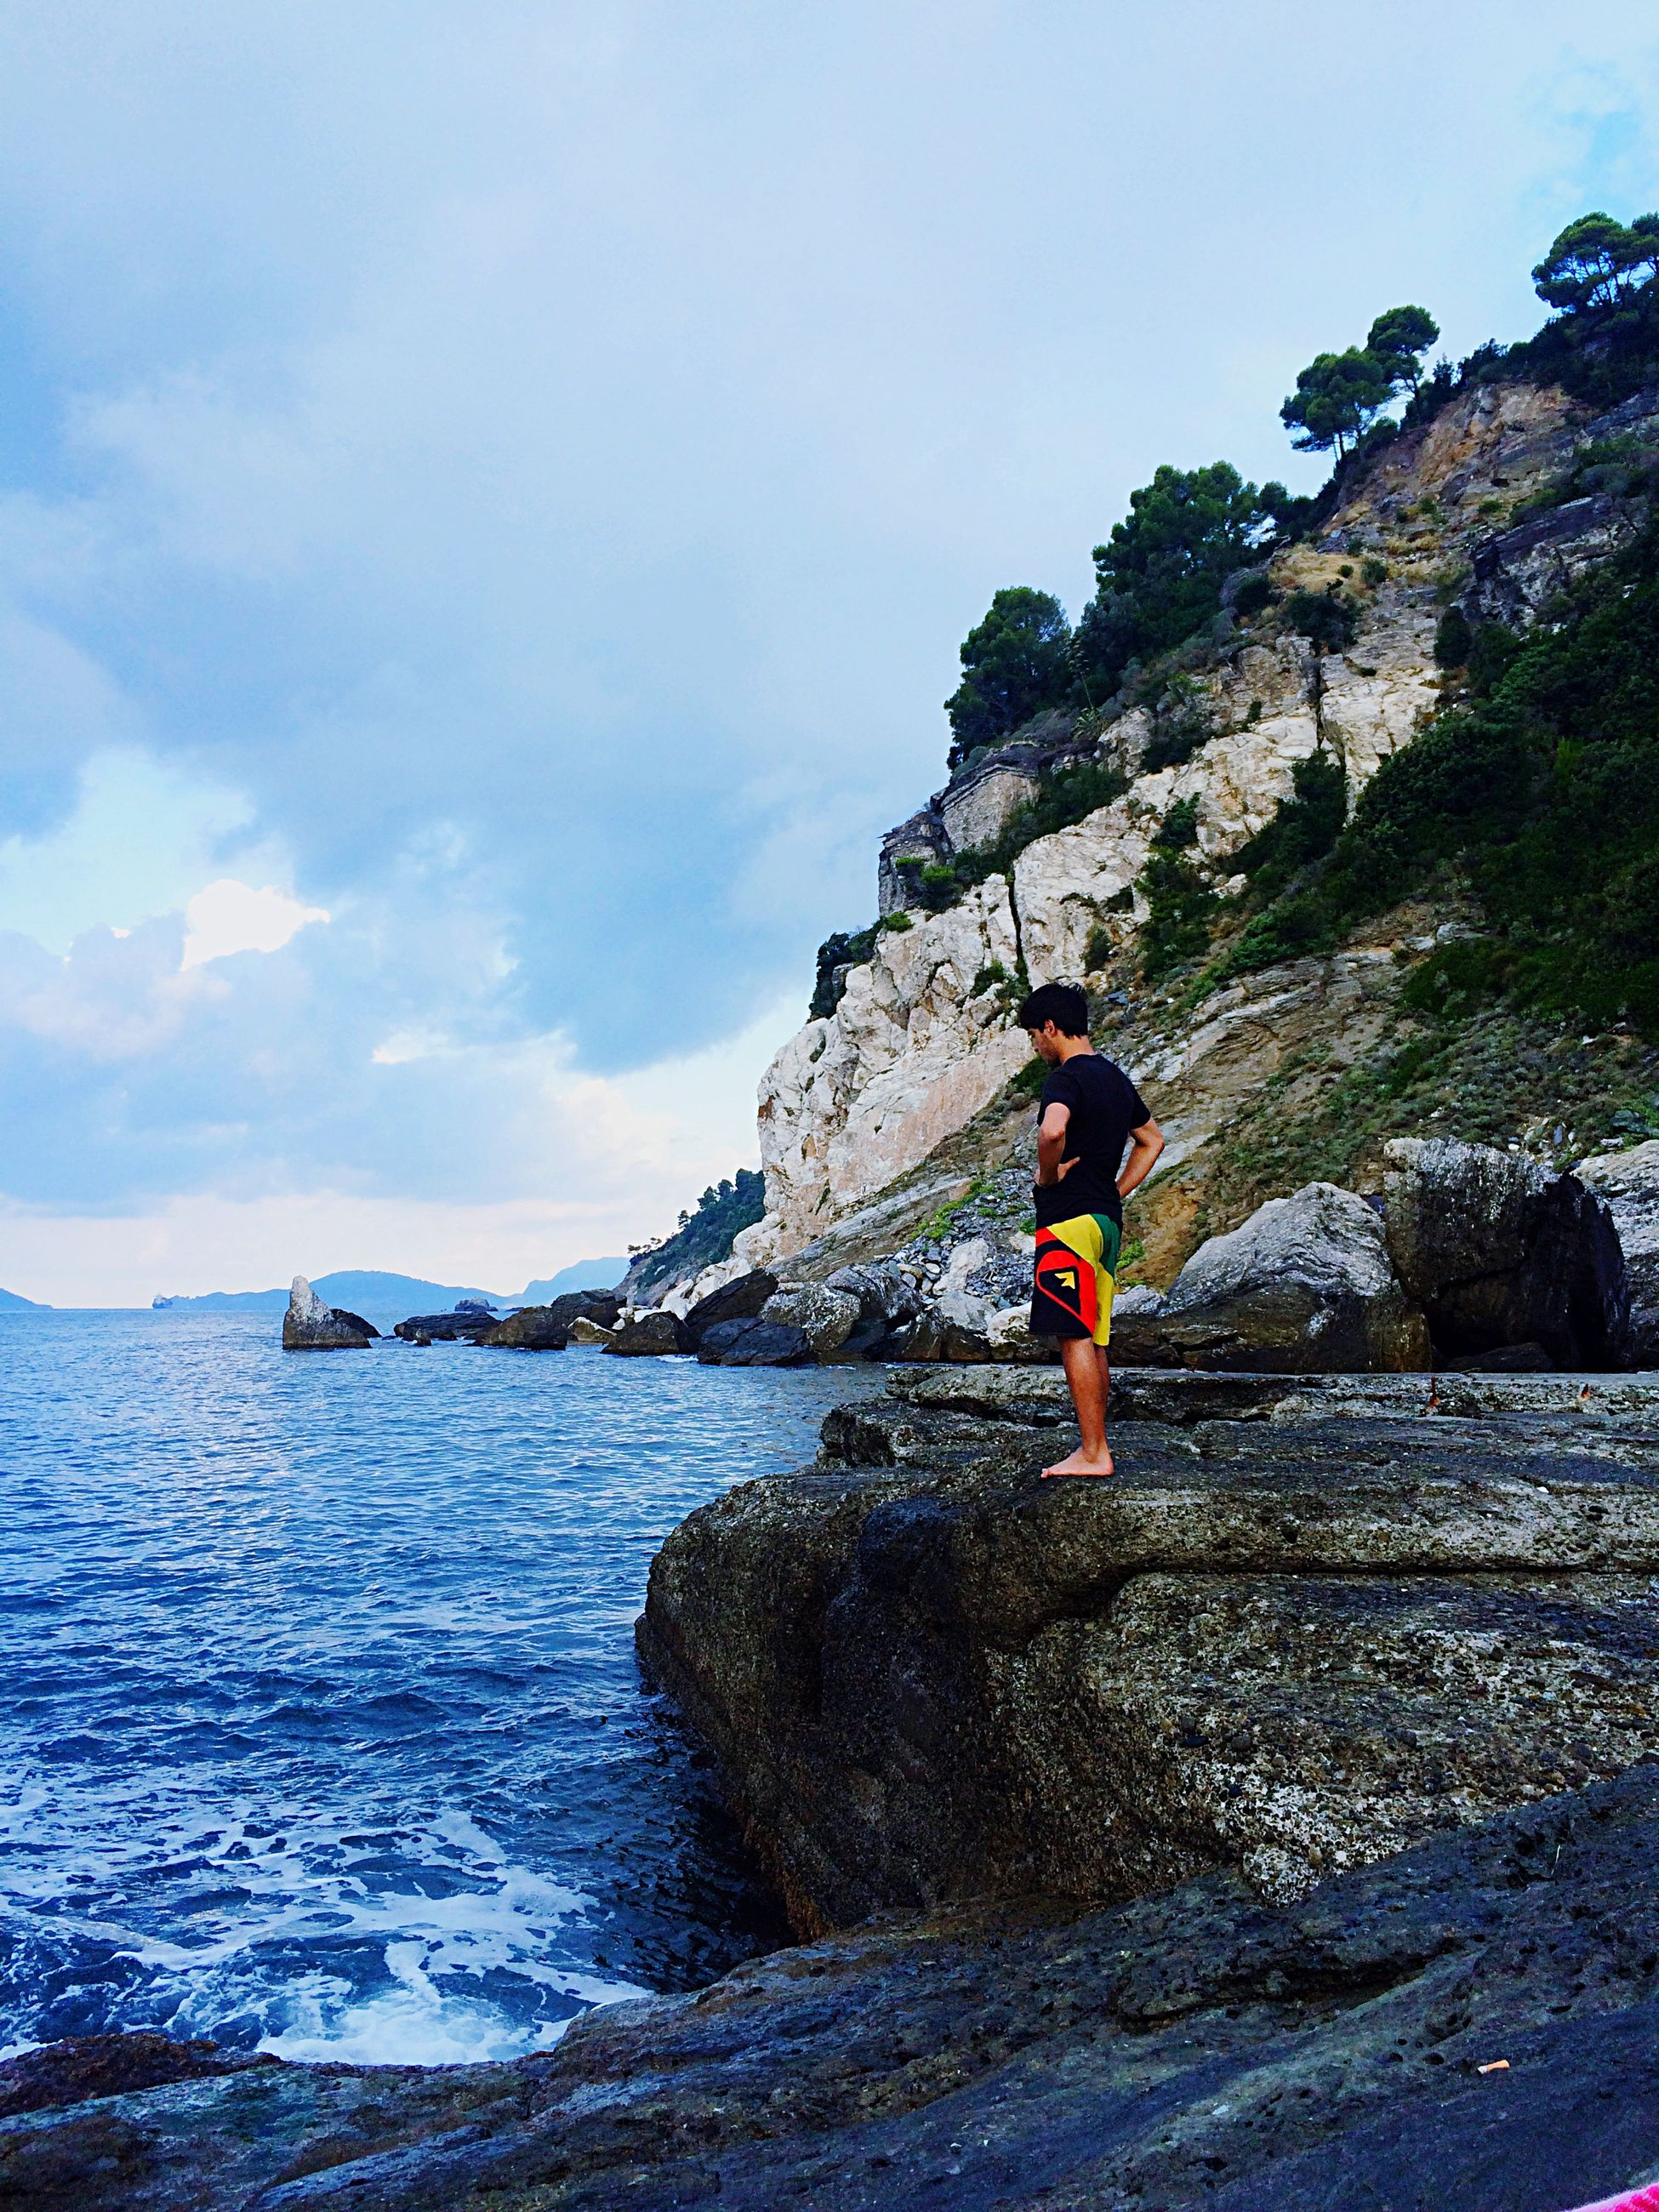 water, sea, lifestyles, sky, leisure activity, full length, standing, men, rear view, rock - object, beach, scenics, tranquil scene, nature, shore, tranquility, person, beauty in nature